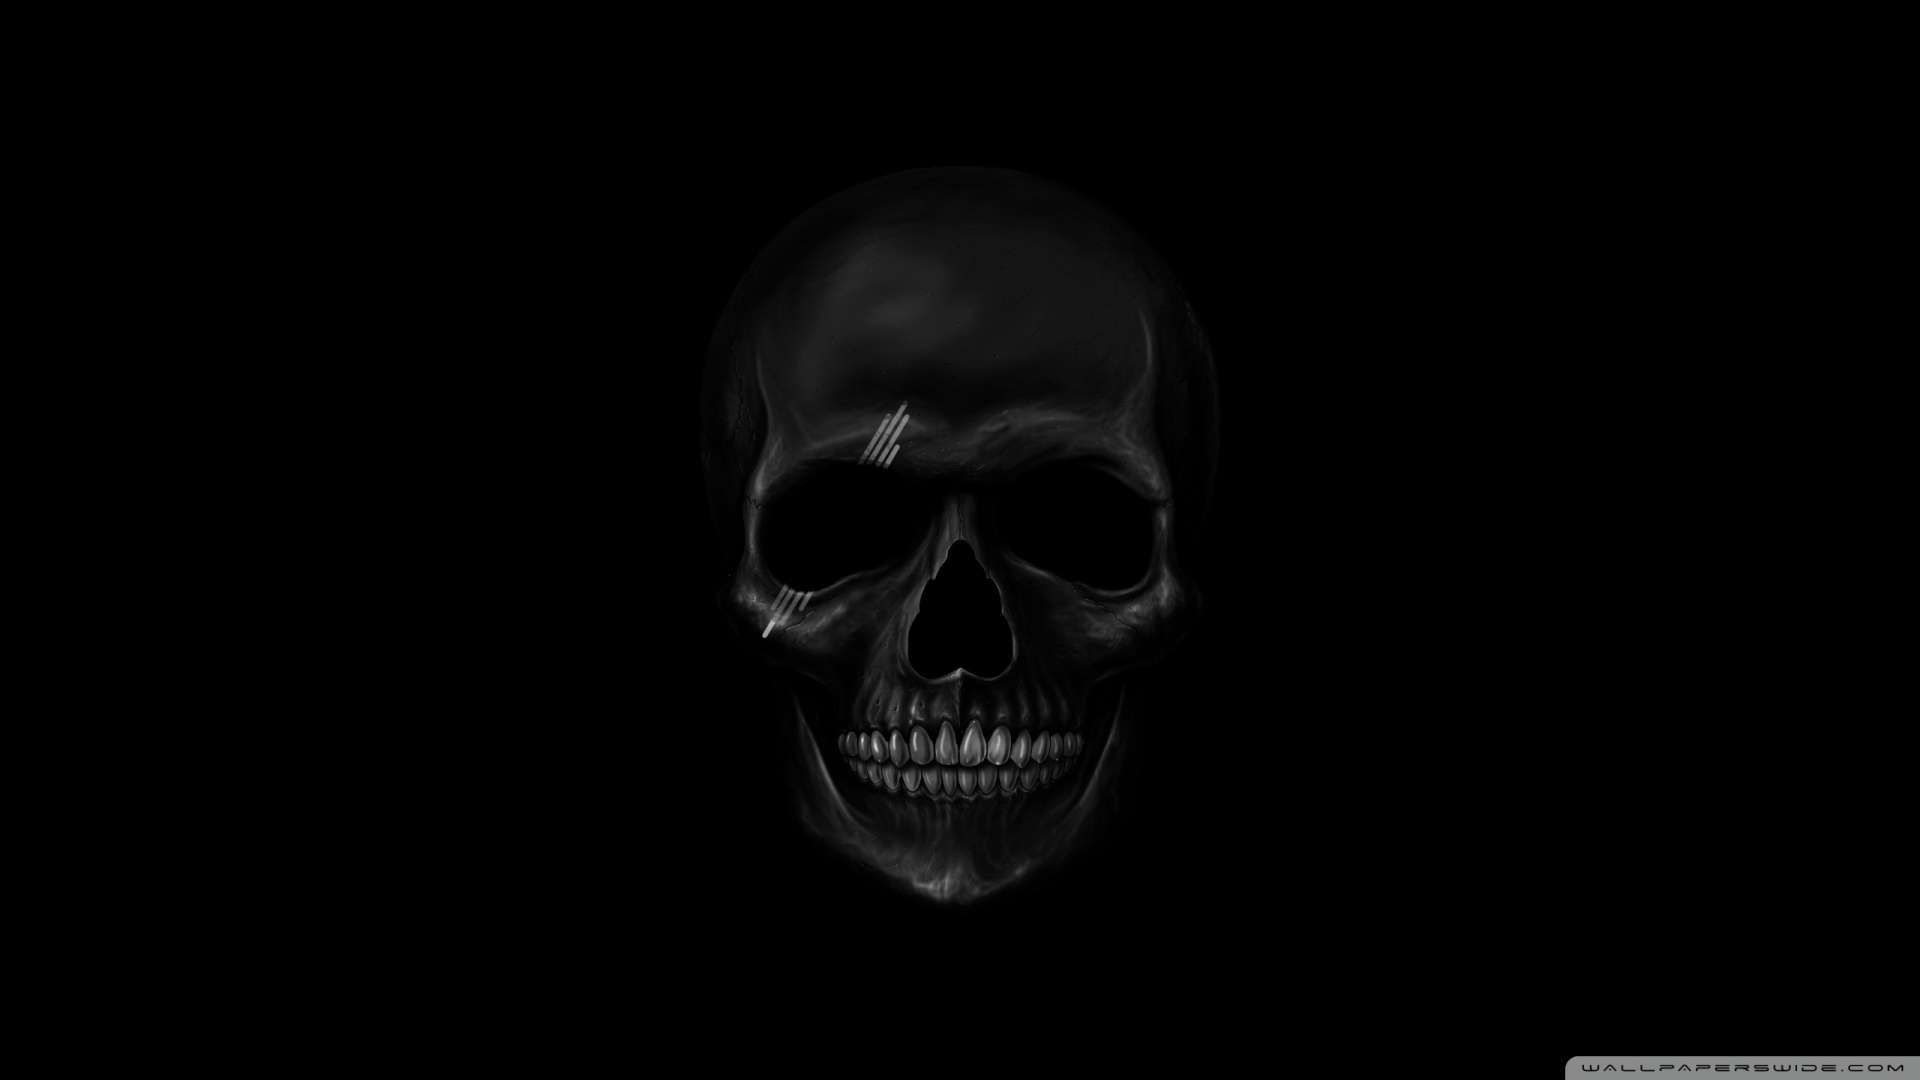 39 Awesome Black Wallpaper Hd 1080p Images Black Hd Wallpaper Hd Skull Wallpapers Black Skulls Wallpaper